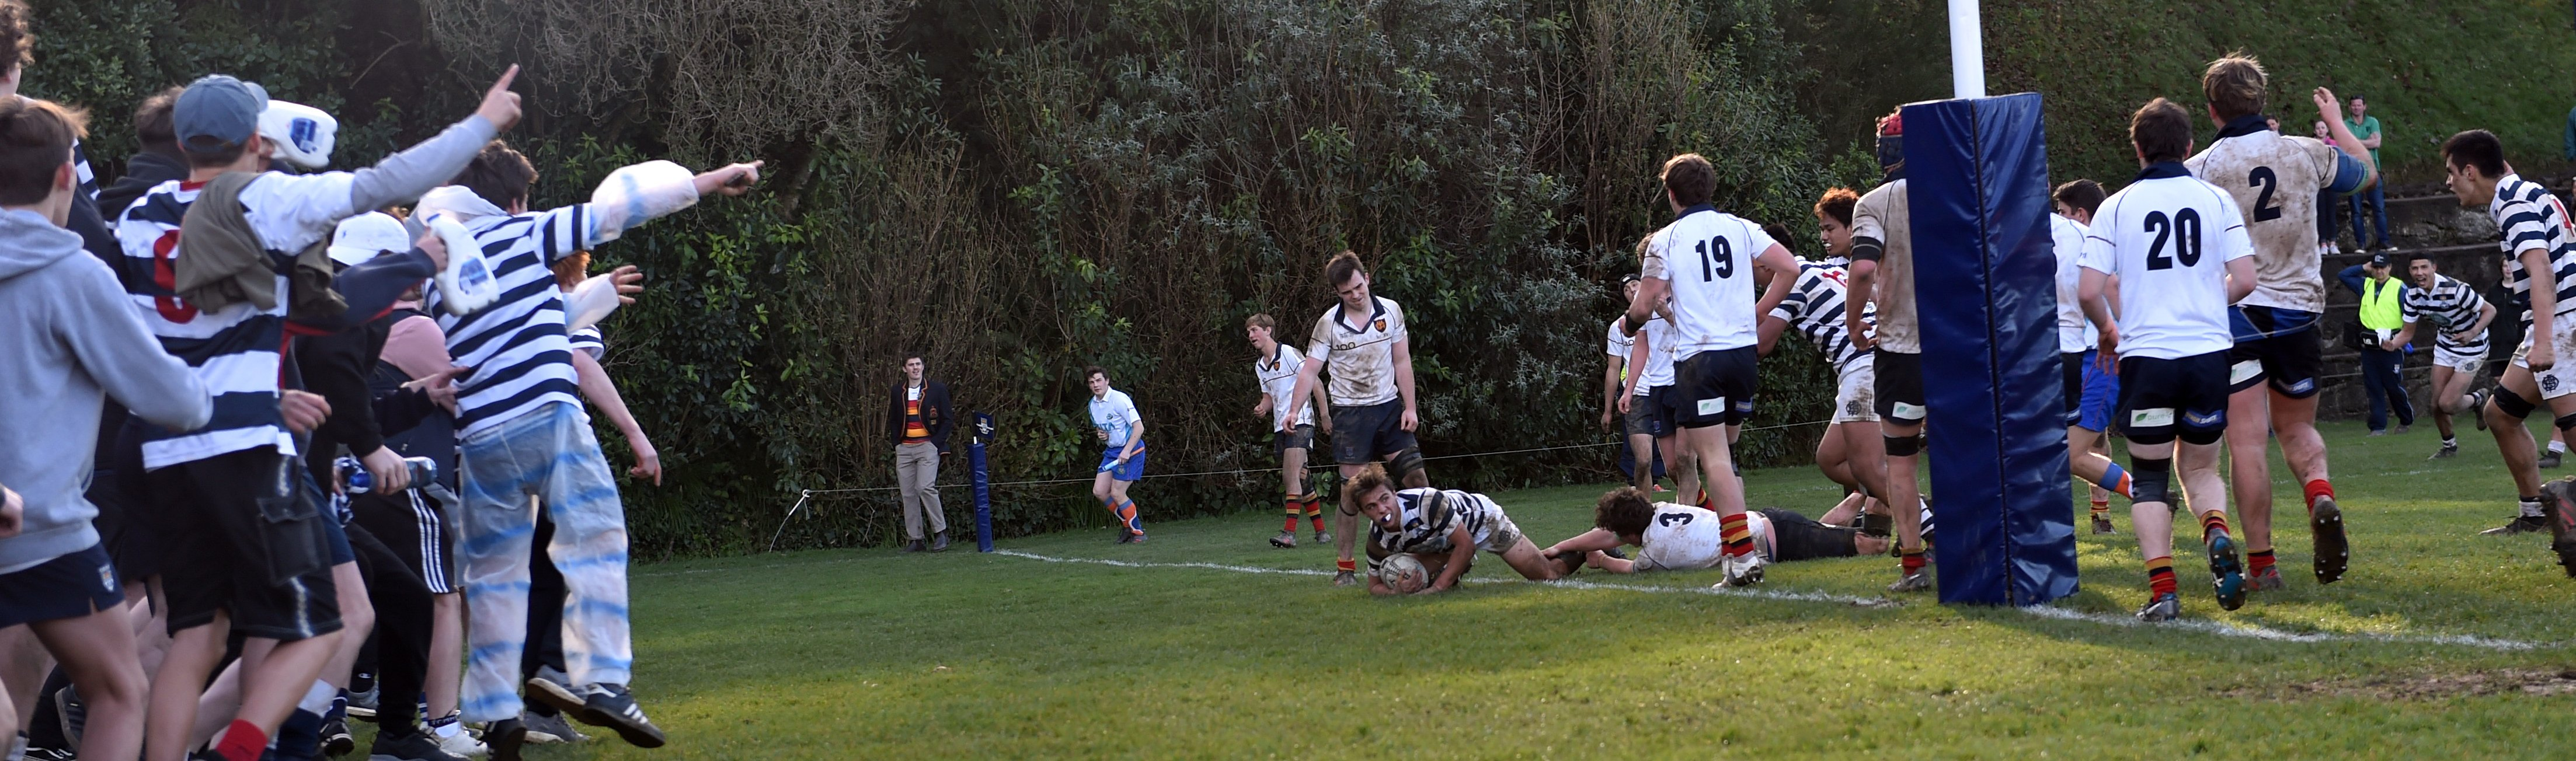 Otago Boys' High School first XV halfback James Arscott scores the winning  try against the John...